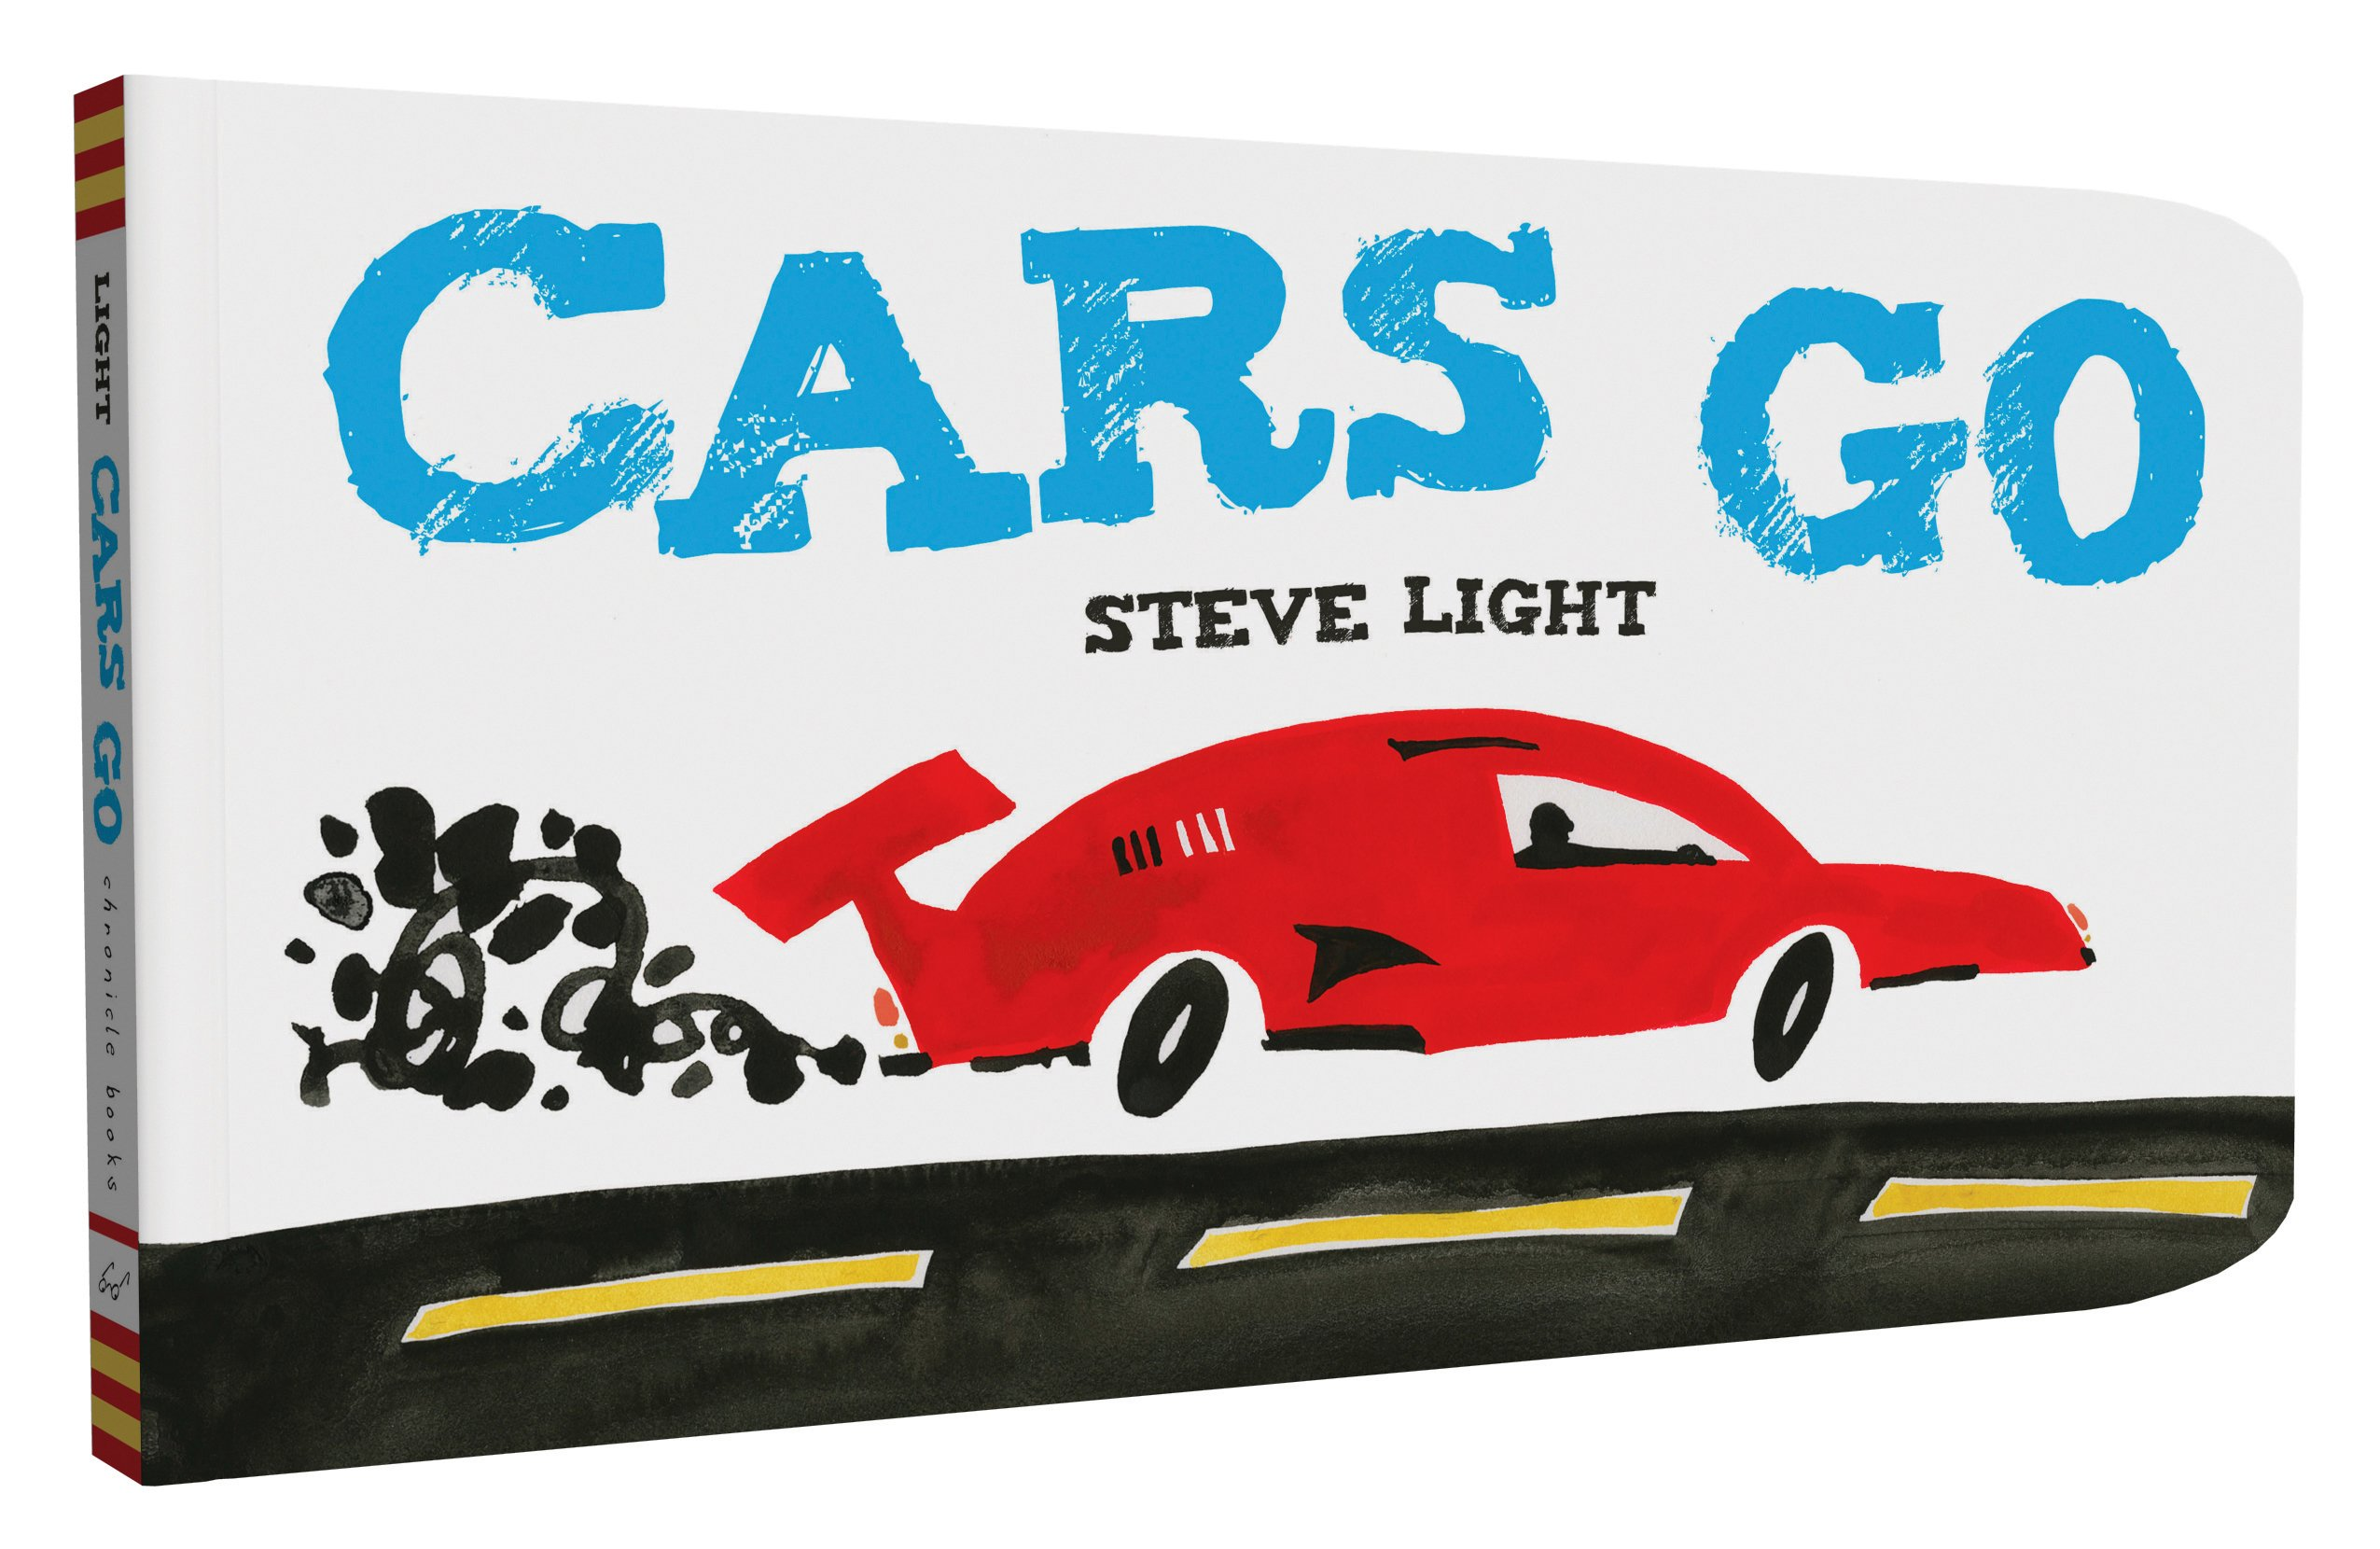 cars go steve light books